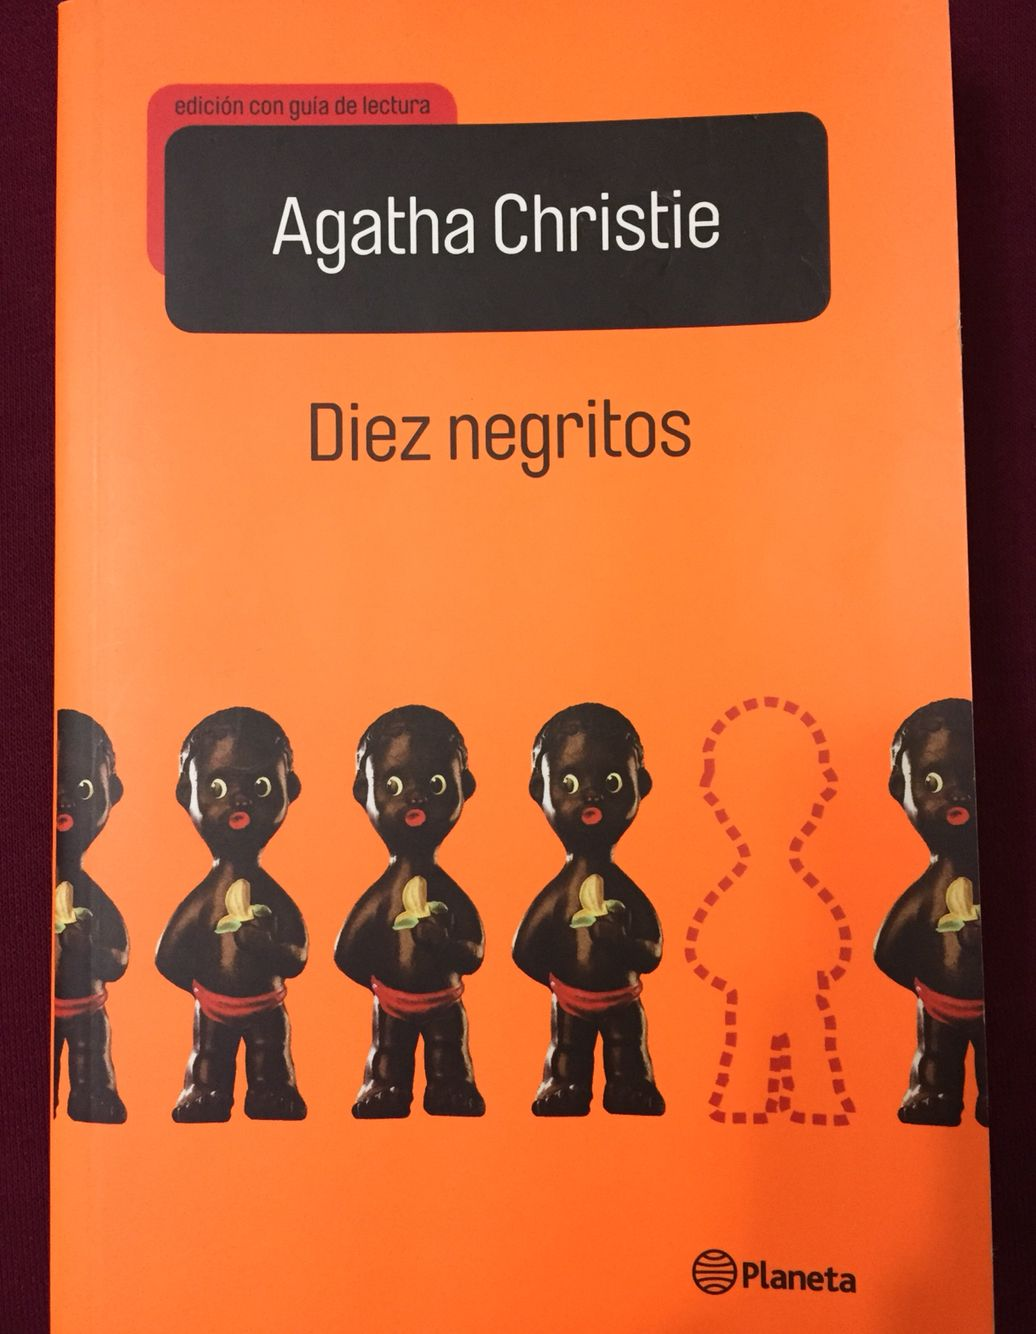 Libro 10 Negritos Diez Negritos Agatha Christie Narrativa Poster Movie